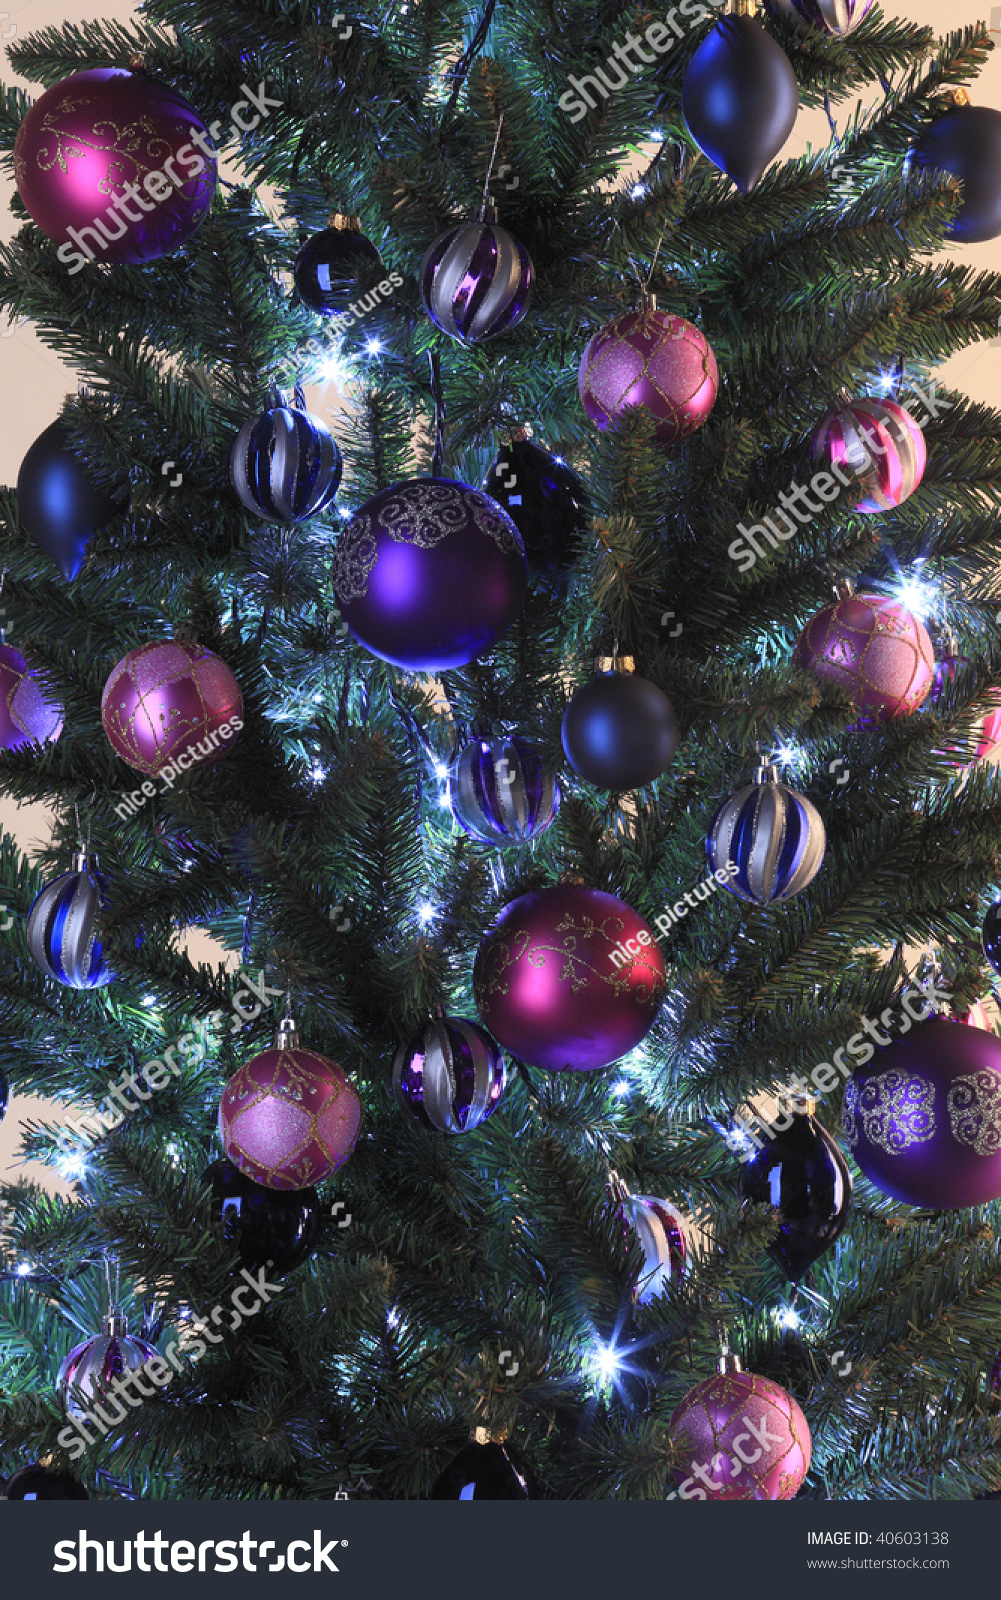 Christmas Tree Decorated Pink Purple Balls Stock Photo Edit Now